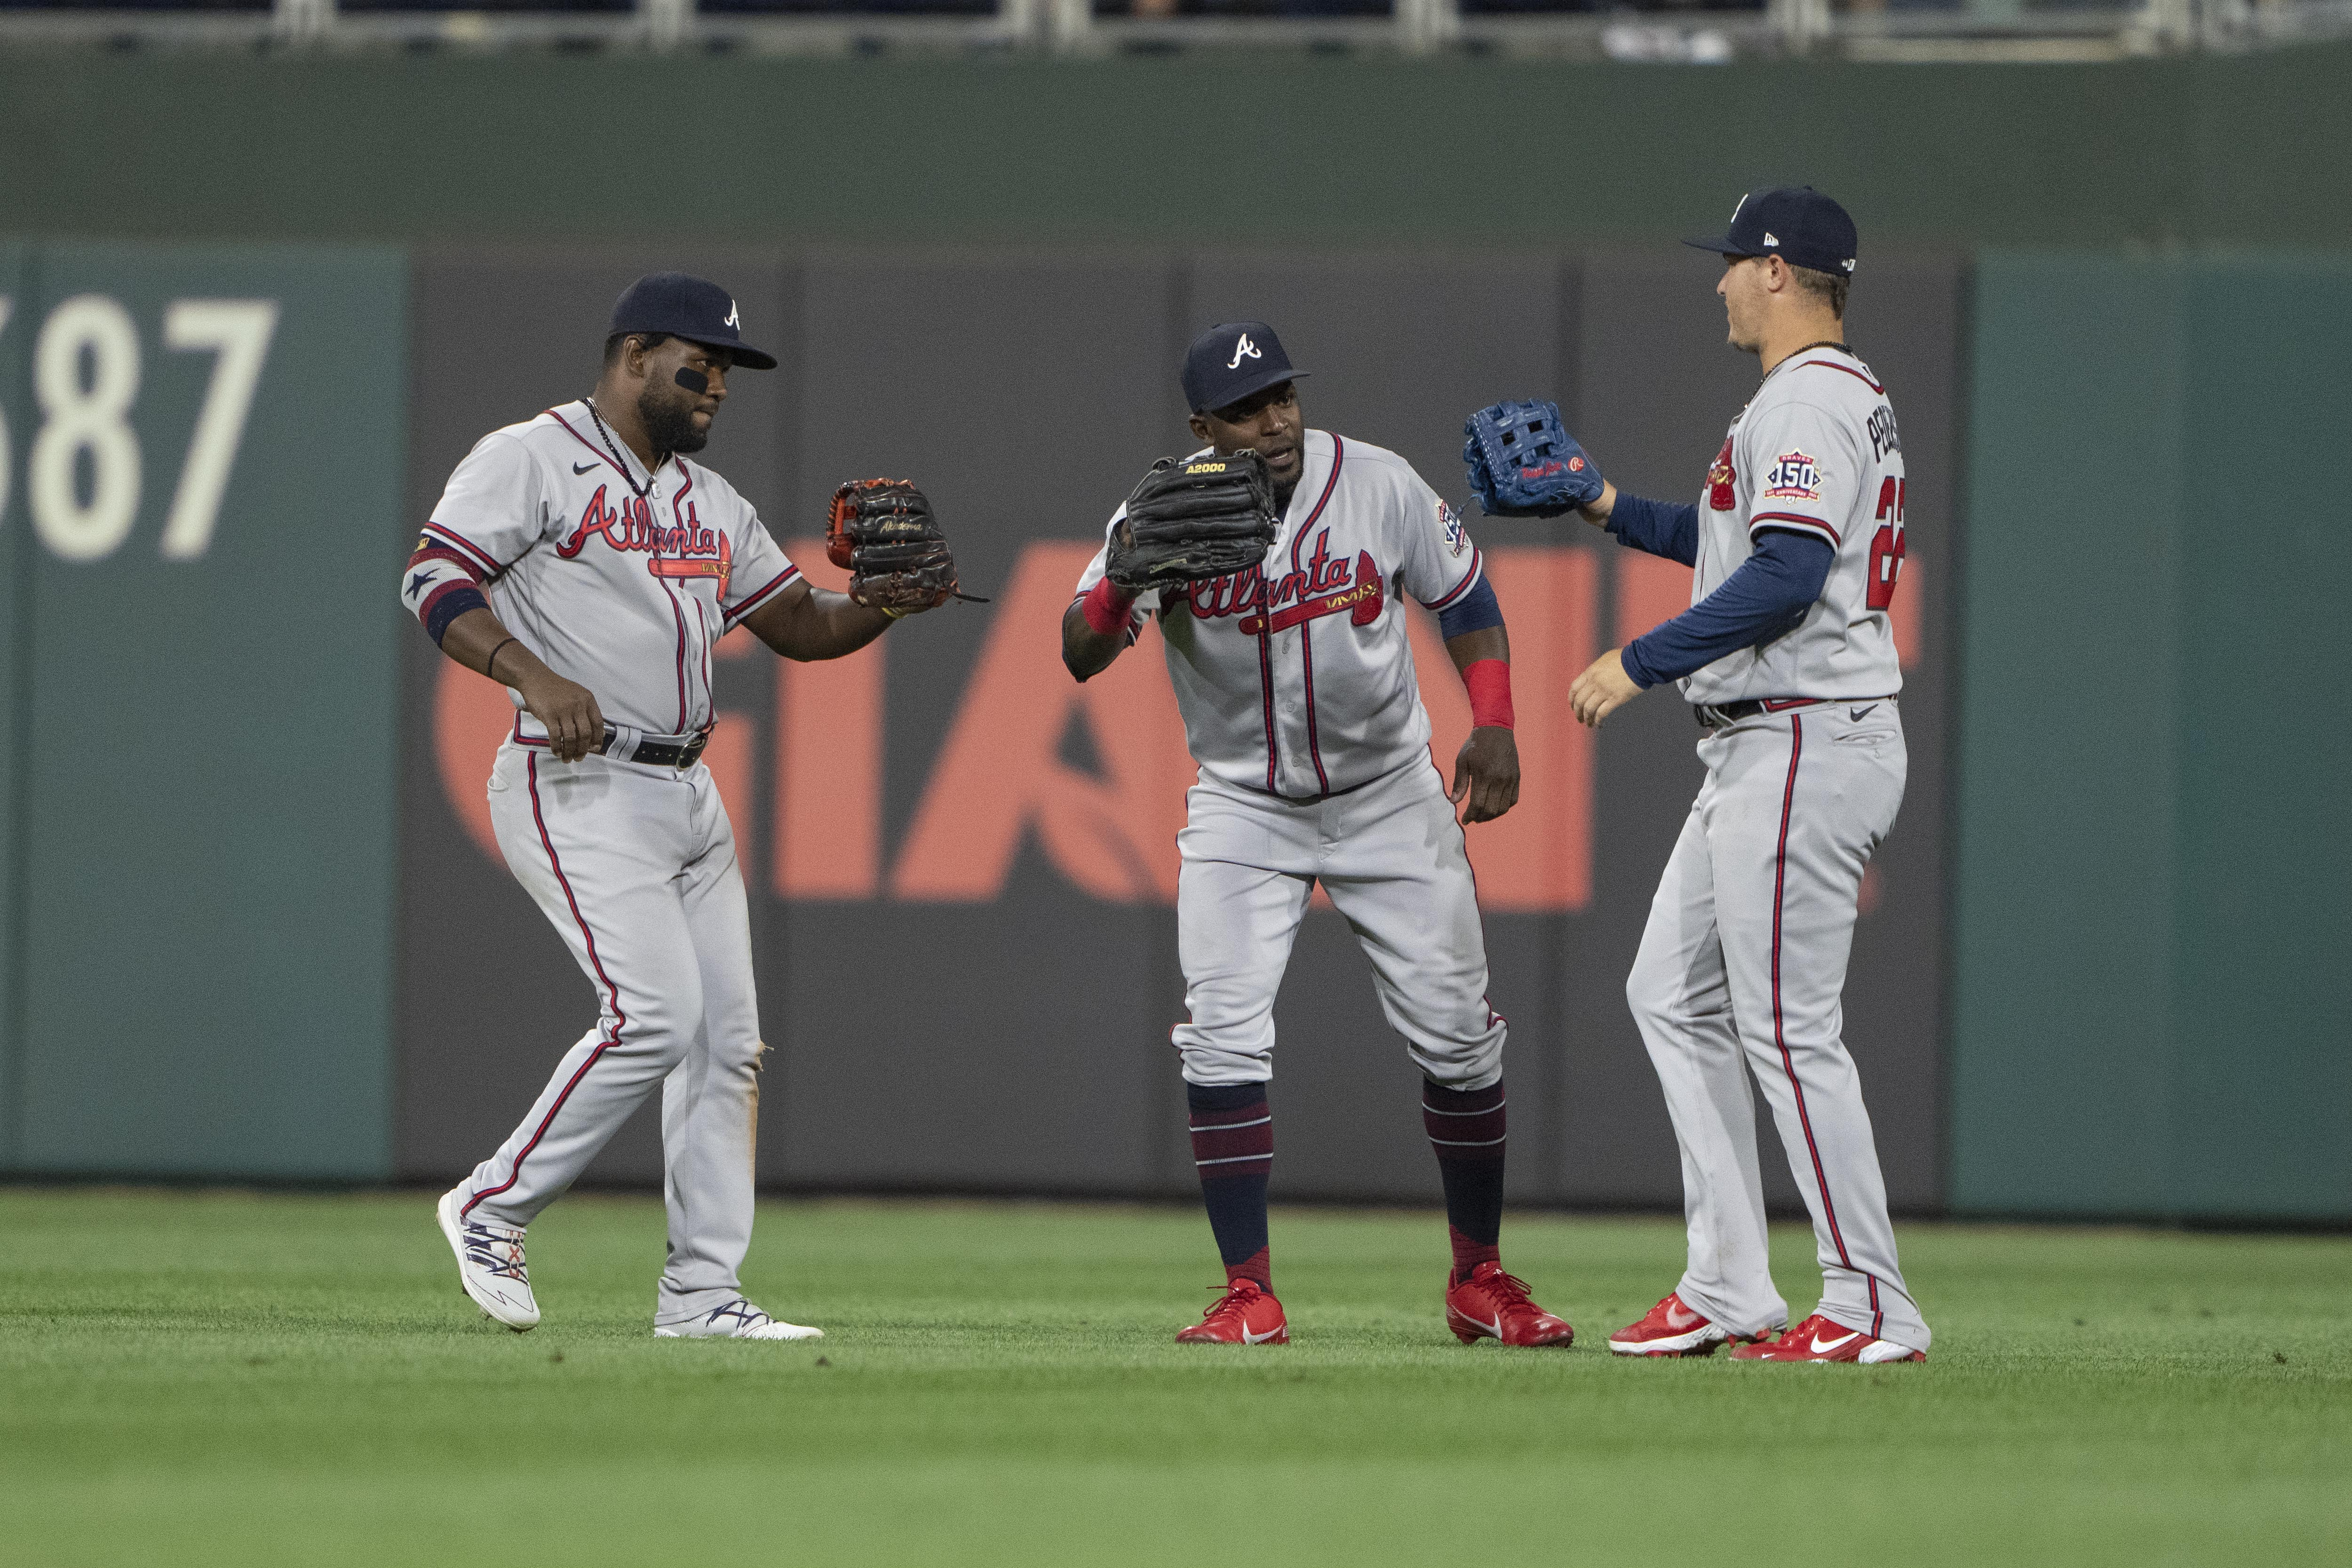 Atlanta Braves Left Fielder Abraham Almonte (34) and Atlanta Braves Center Fielder Guillermo Heredia (38) and Atlanta Braves Right Fielder Joc Pederson (22) celebrate the victory after the ninth inning of a Major League Baseball game between the Atlanta Braves and the Philadelphia Phillies on July 24, 2021, at Citizens Bank Park in Philadelphia, PA.